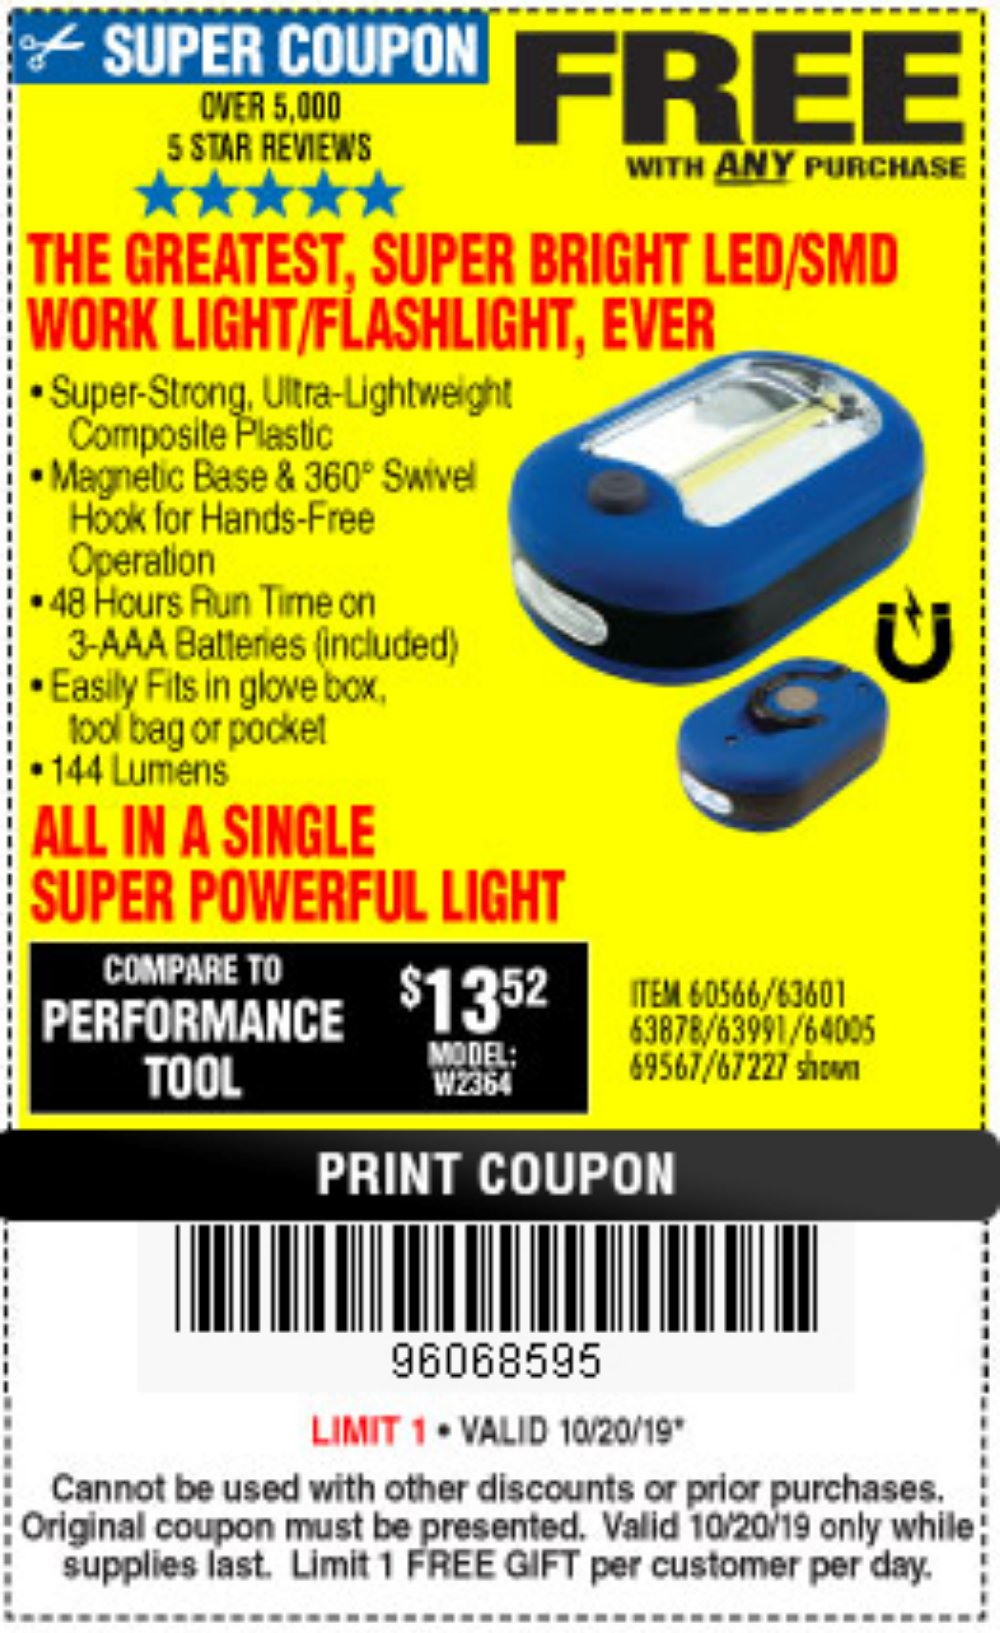 Harbor Freight Coupon, HF Coupons - FREE - Led Portable Worklight/flashlight